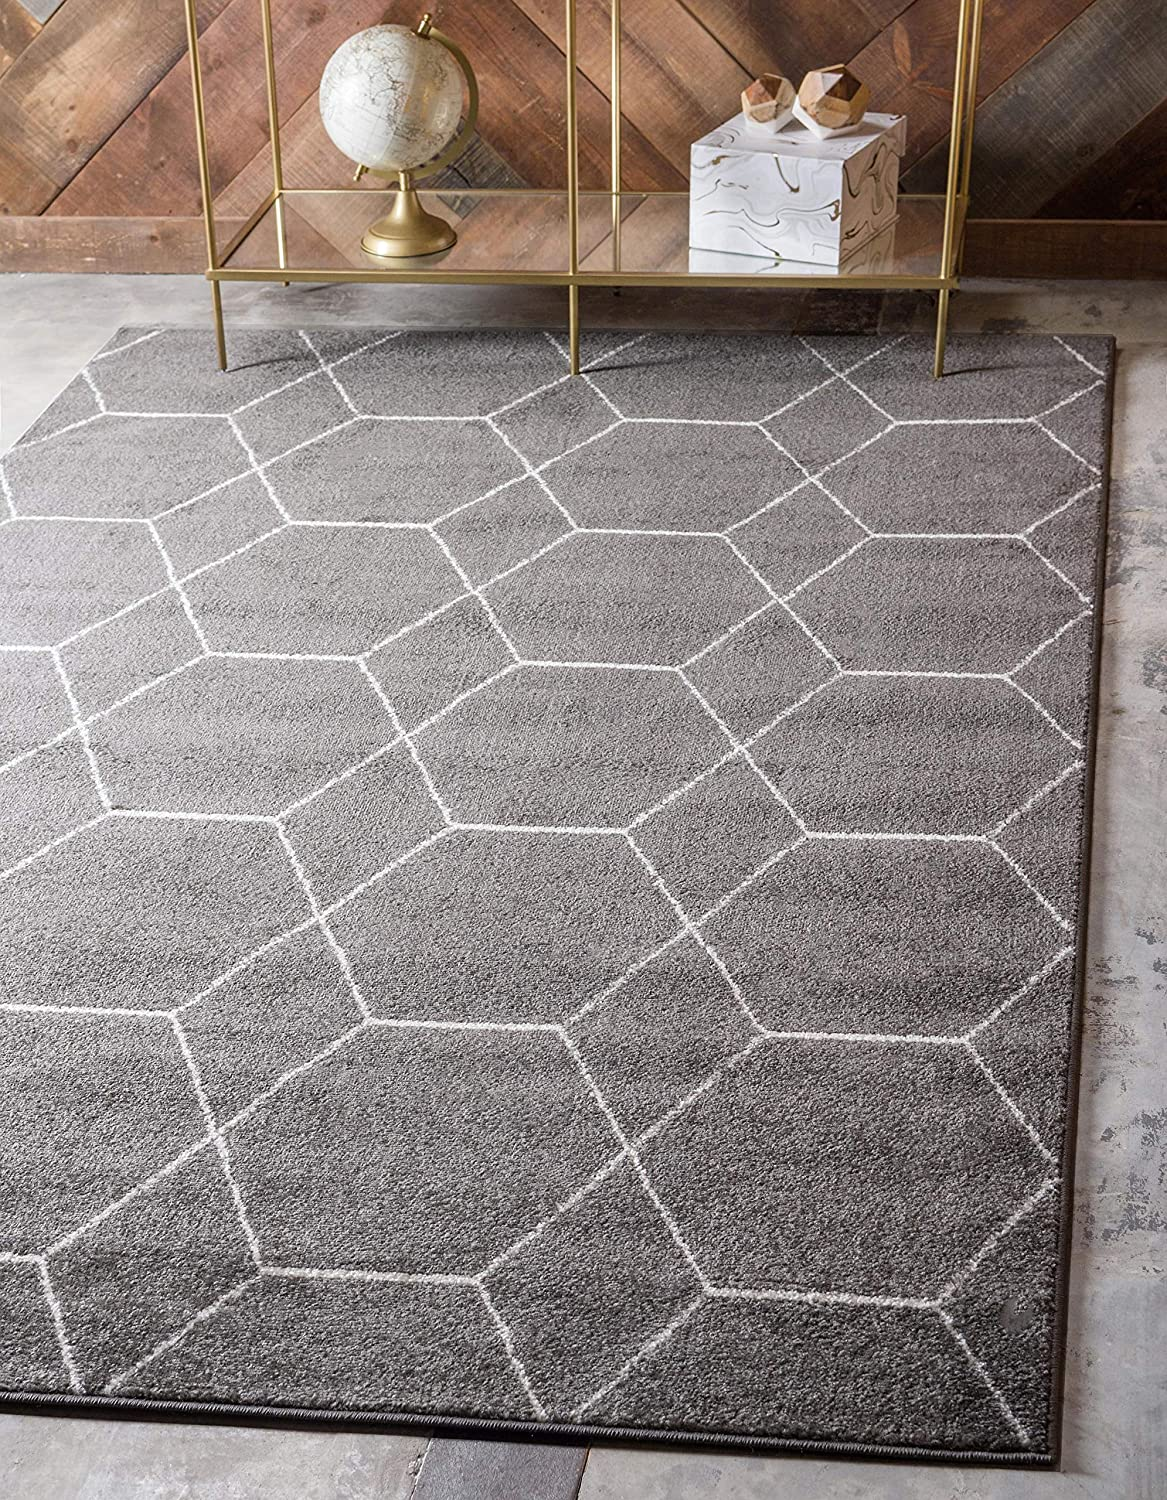 Unique Loom Trellis Frieze Collection Lattice Moroccan Geometric Modern Dark Gray Area Rug (4' 0 x 6' 0)